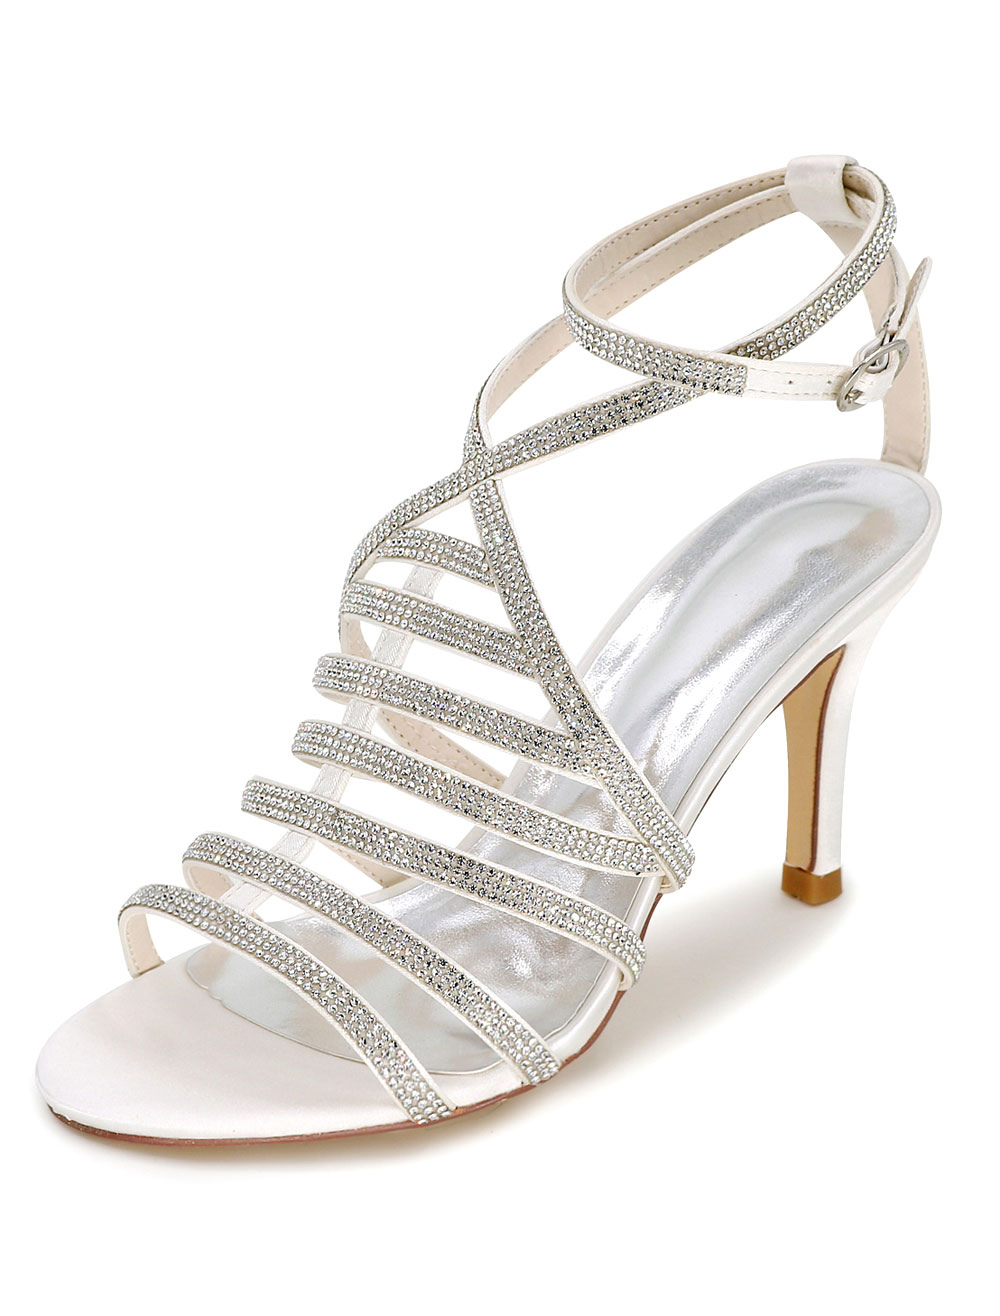 White Wedding Shoes Gladiator Sandals Women's High Heel Rhinestones Ankle Strap Bridal Shoes